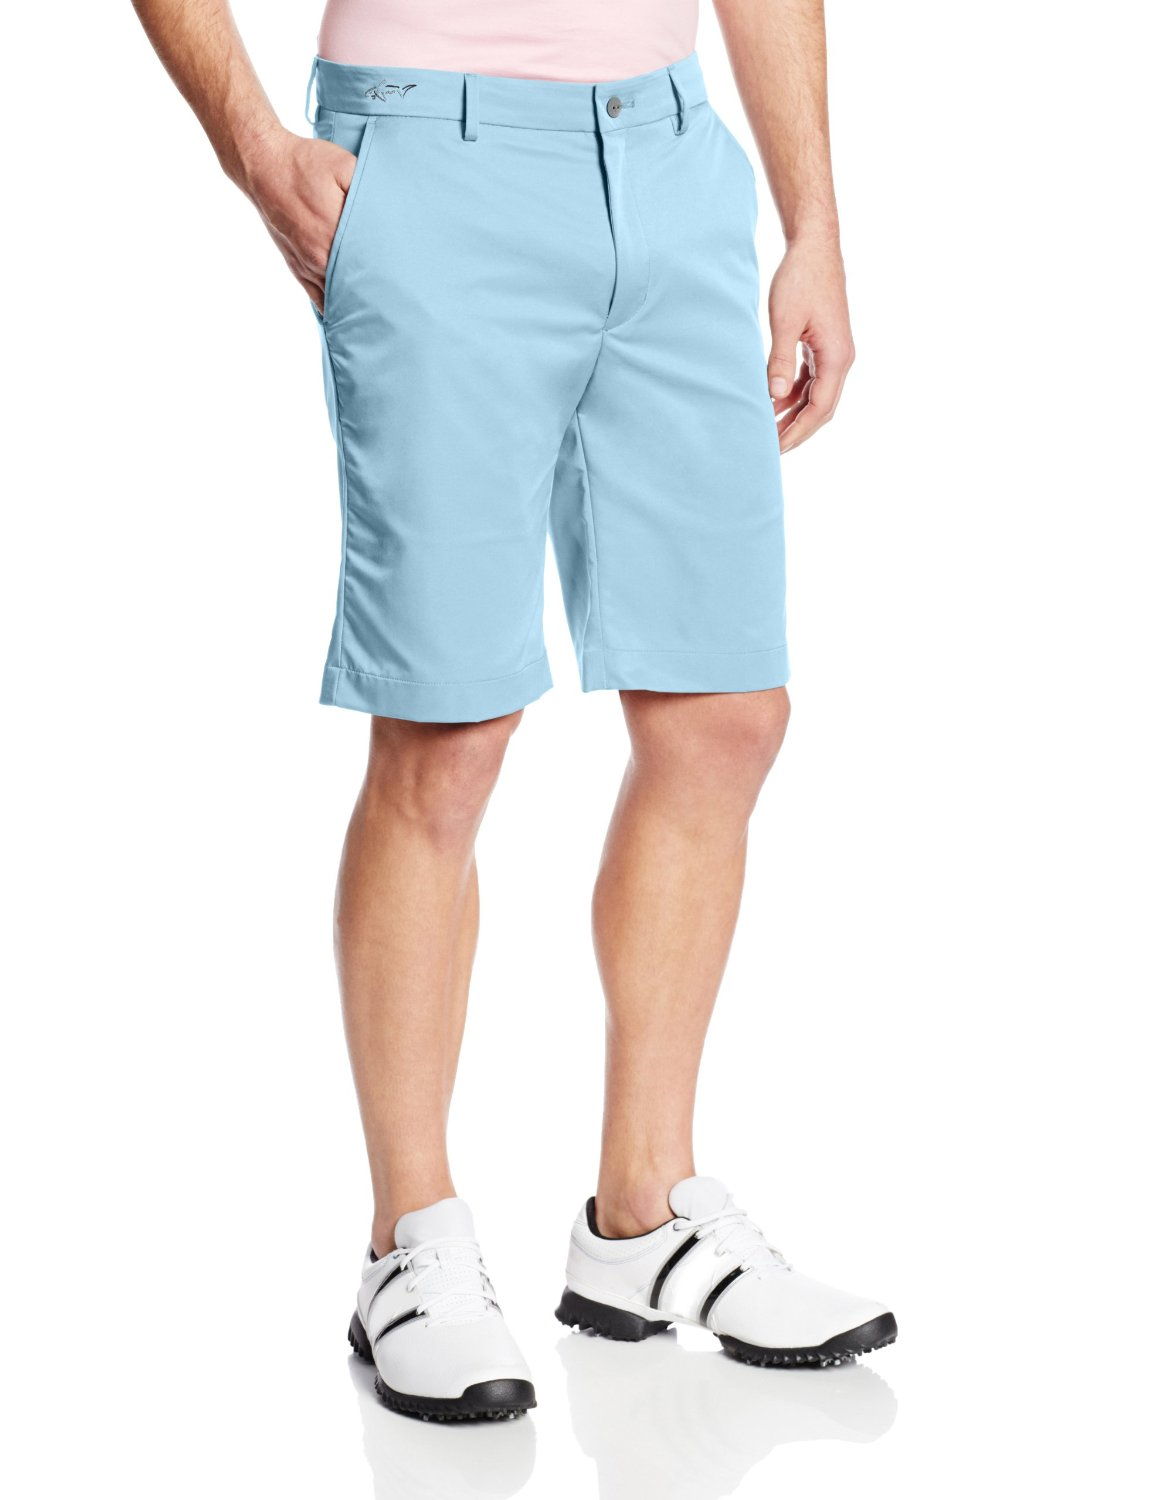 Greg Norman Mens Golf Shorts